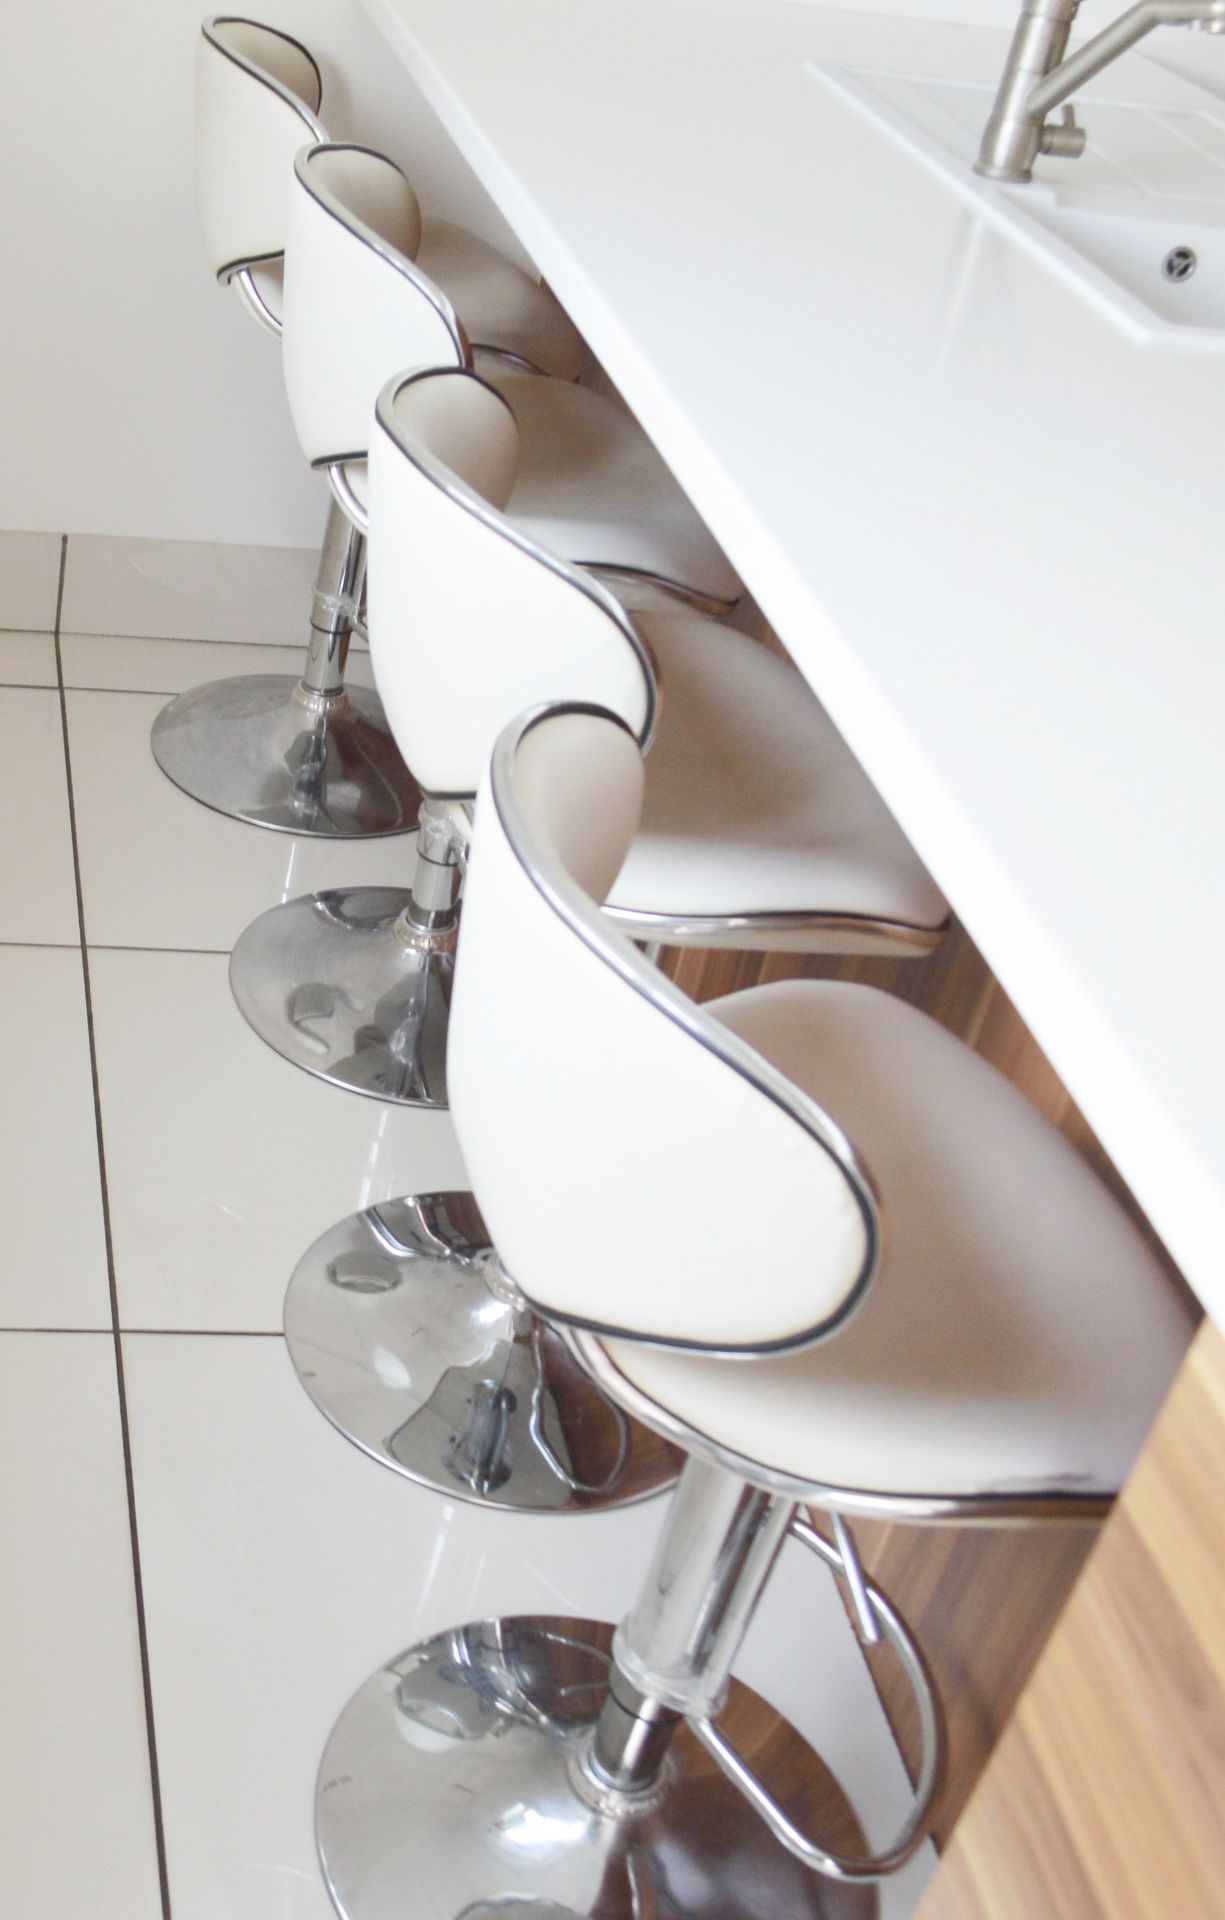 4 x Deluxe Modern White Bar Stools -CL685 - Location: Blackburn BB6 - NO VAT On Hammer This Lot - Image 3 of 4